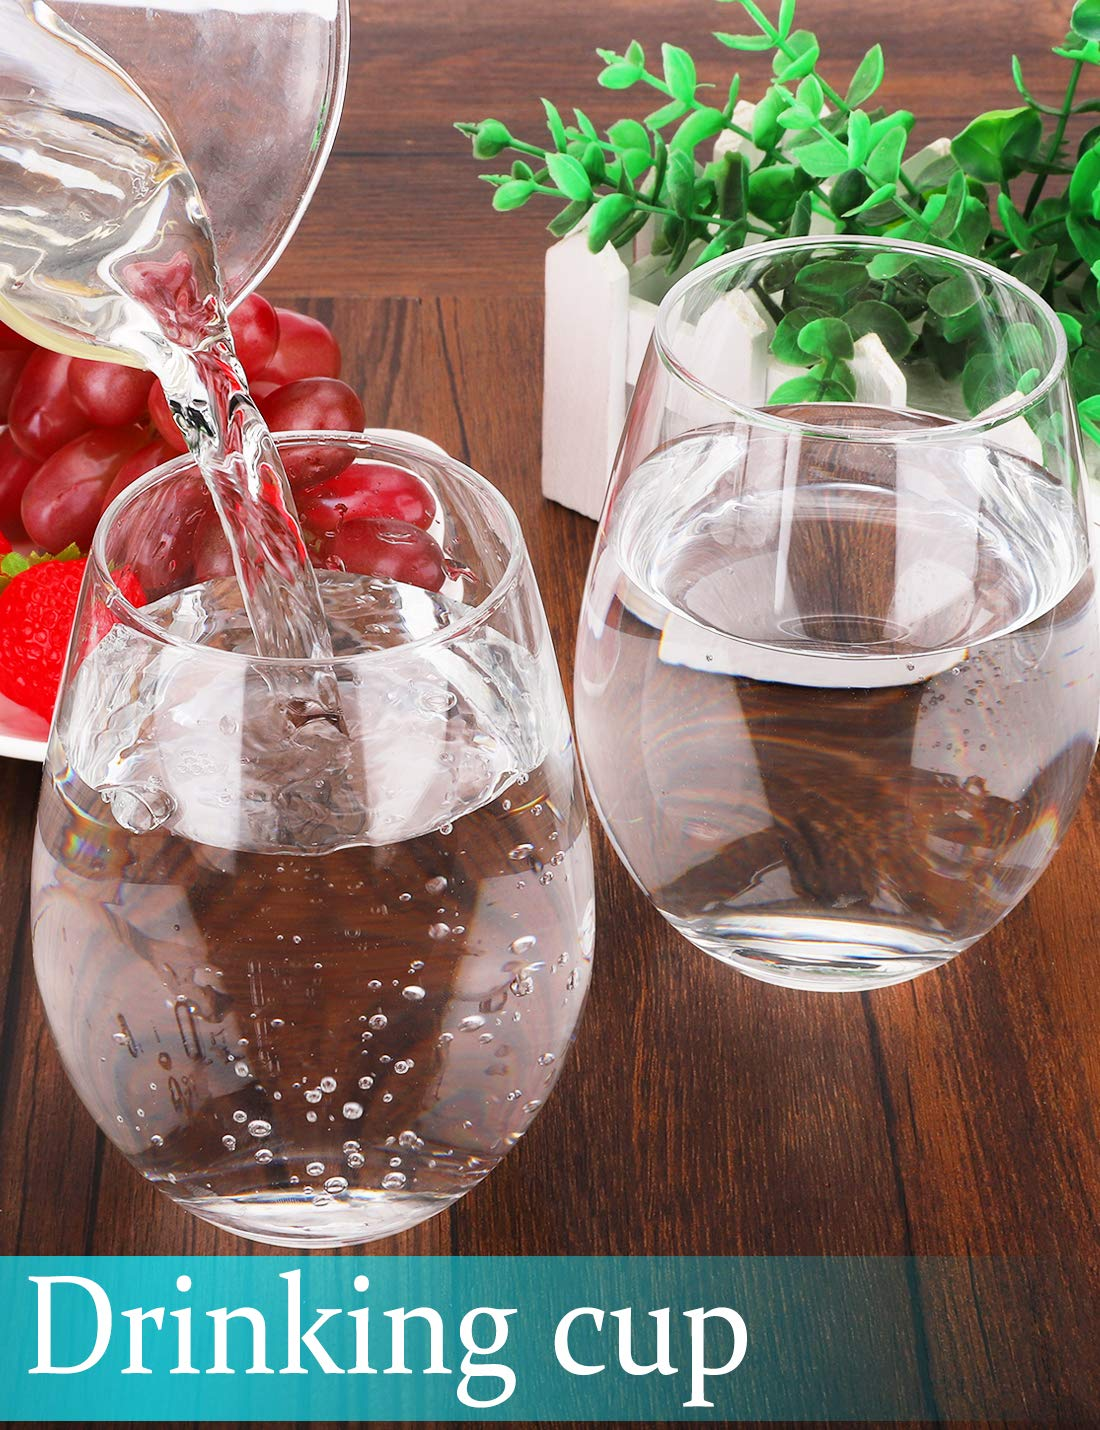 Stemless Wine Glasses, 20- Ounce, Drinking Glass Set, Tumbler Cup, Clear, 4- Piece, Ideal for Red and White Wine, Juice, Water, Kitchen Glassware, Beach, Wedding and Party Gifts - Amallino by Amallino (Image #4)